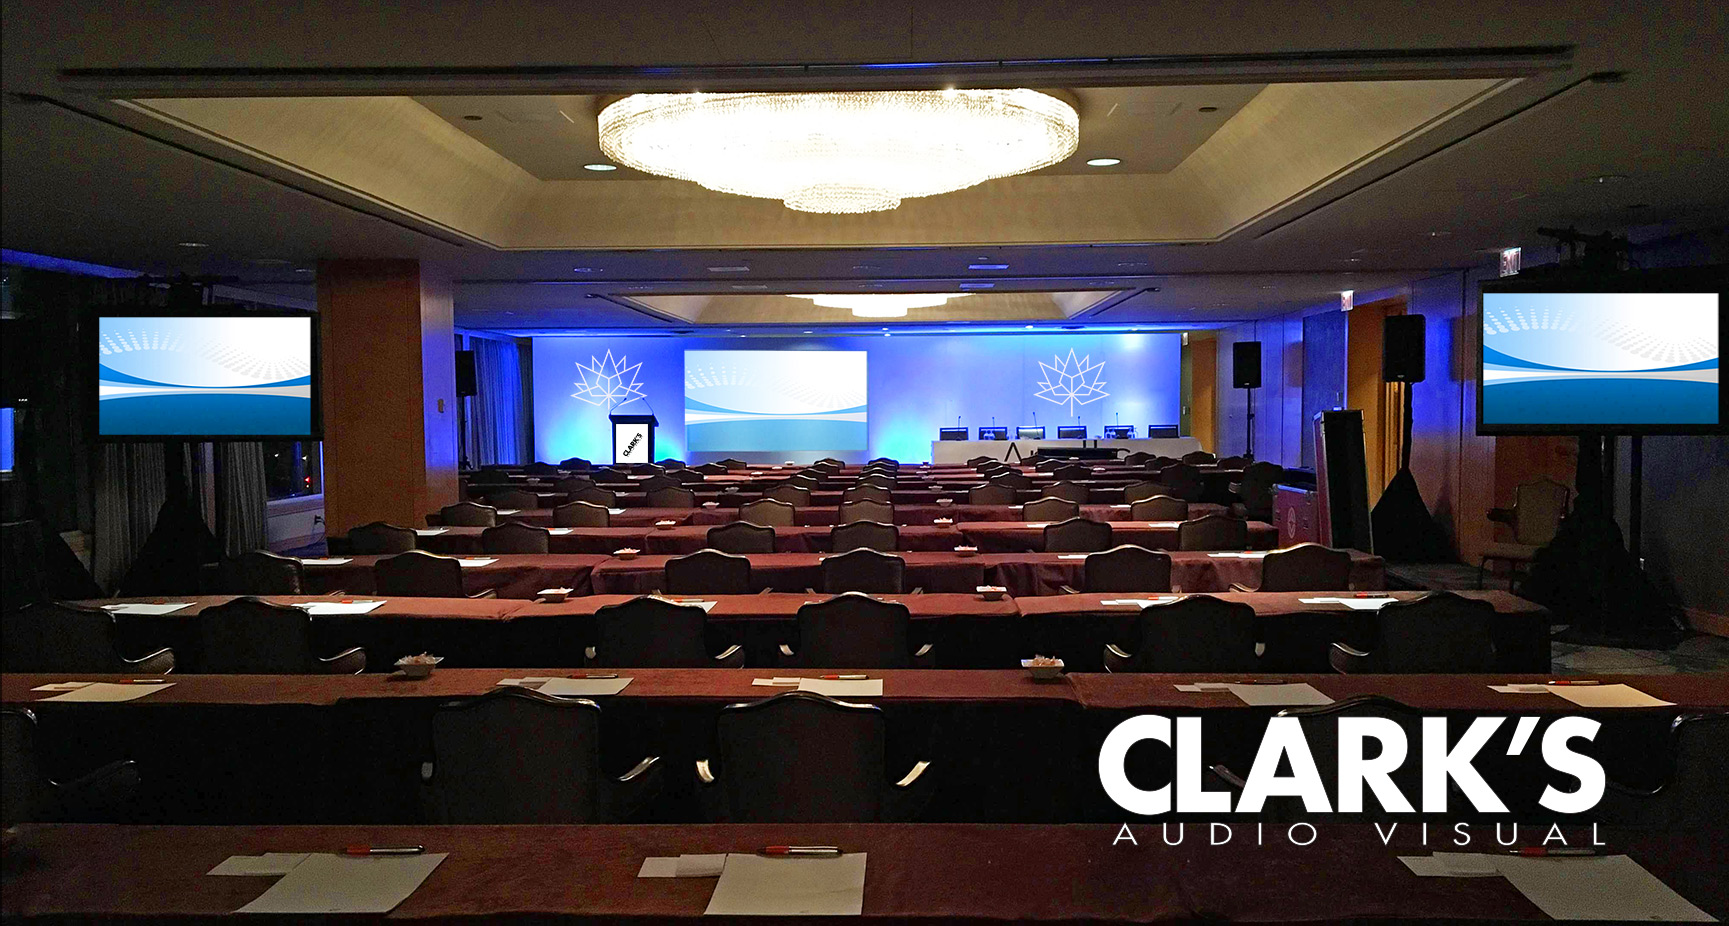 Clark's Audio Visual Canada